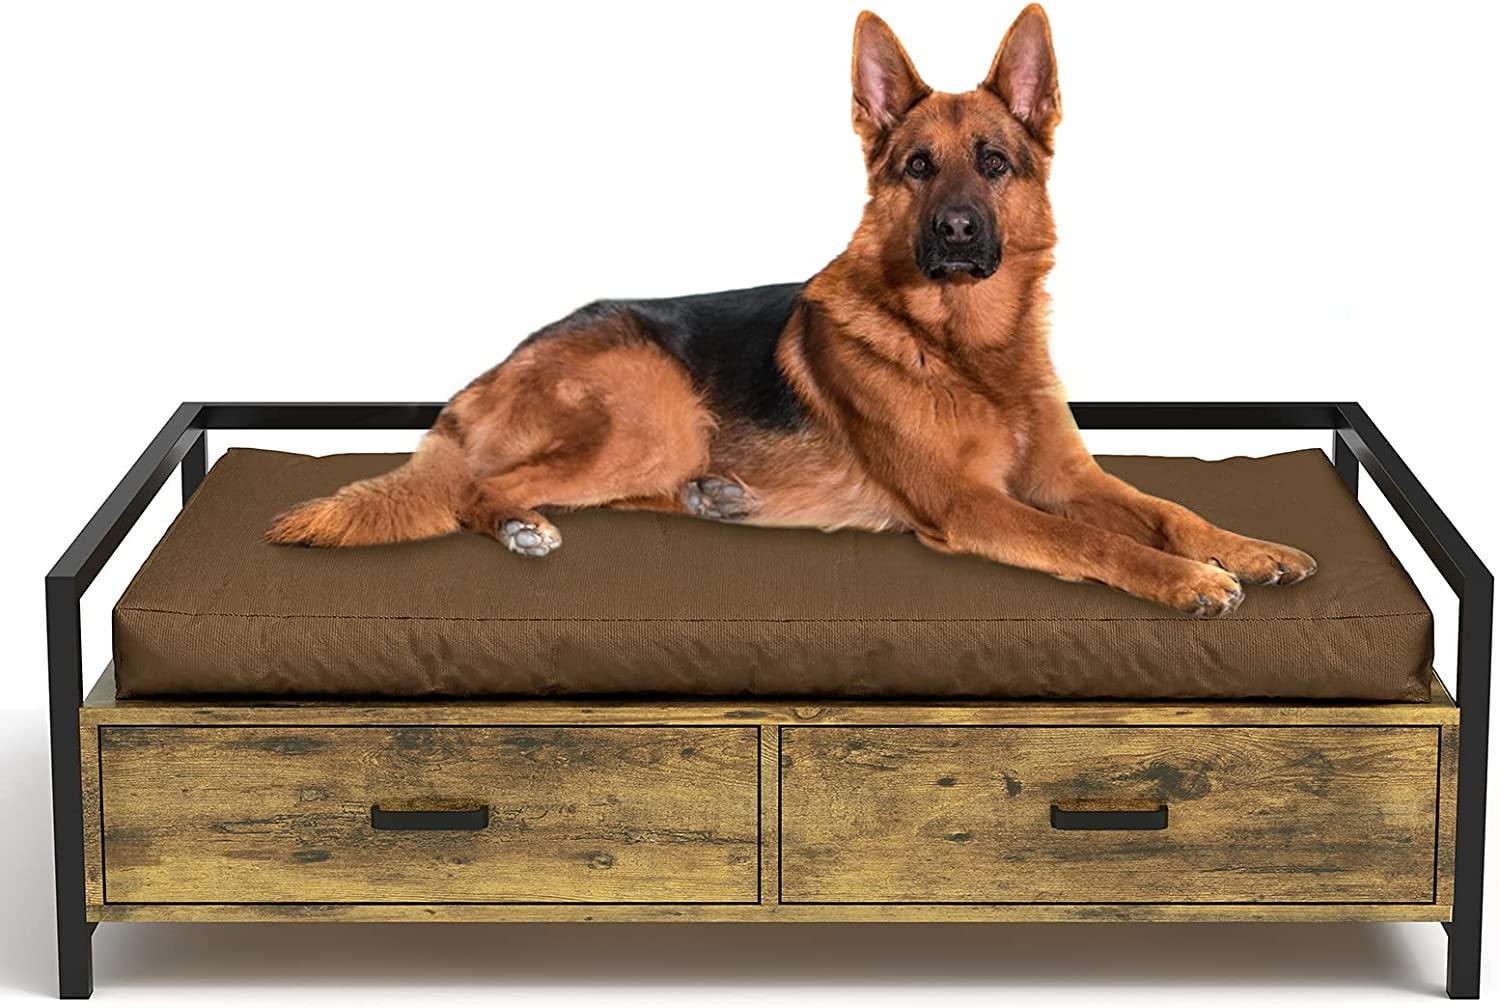 Genuine Free Shipping MSMASK Elevated Dog Beds Frame Dogs Sofa Recommendation Cats Chair with Drawer